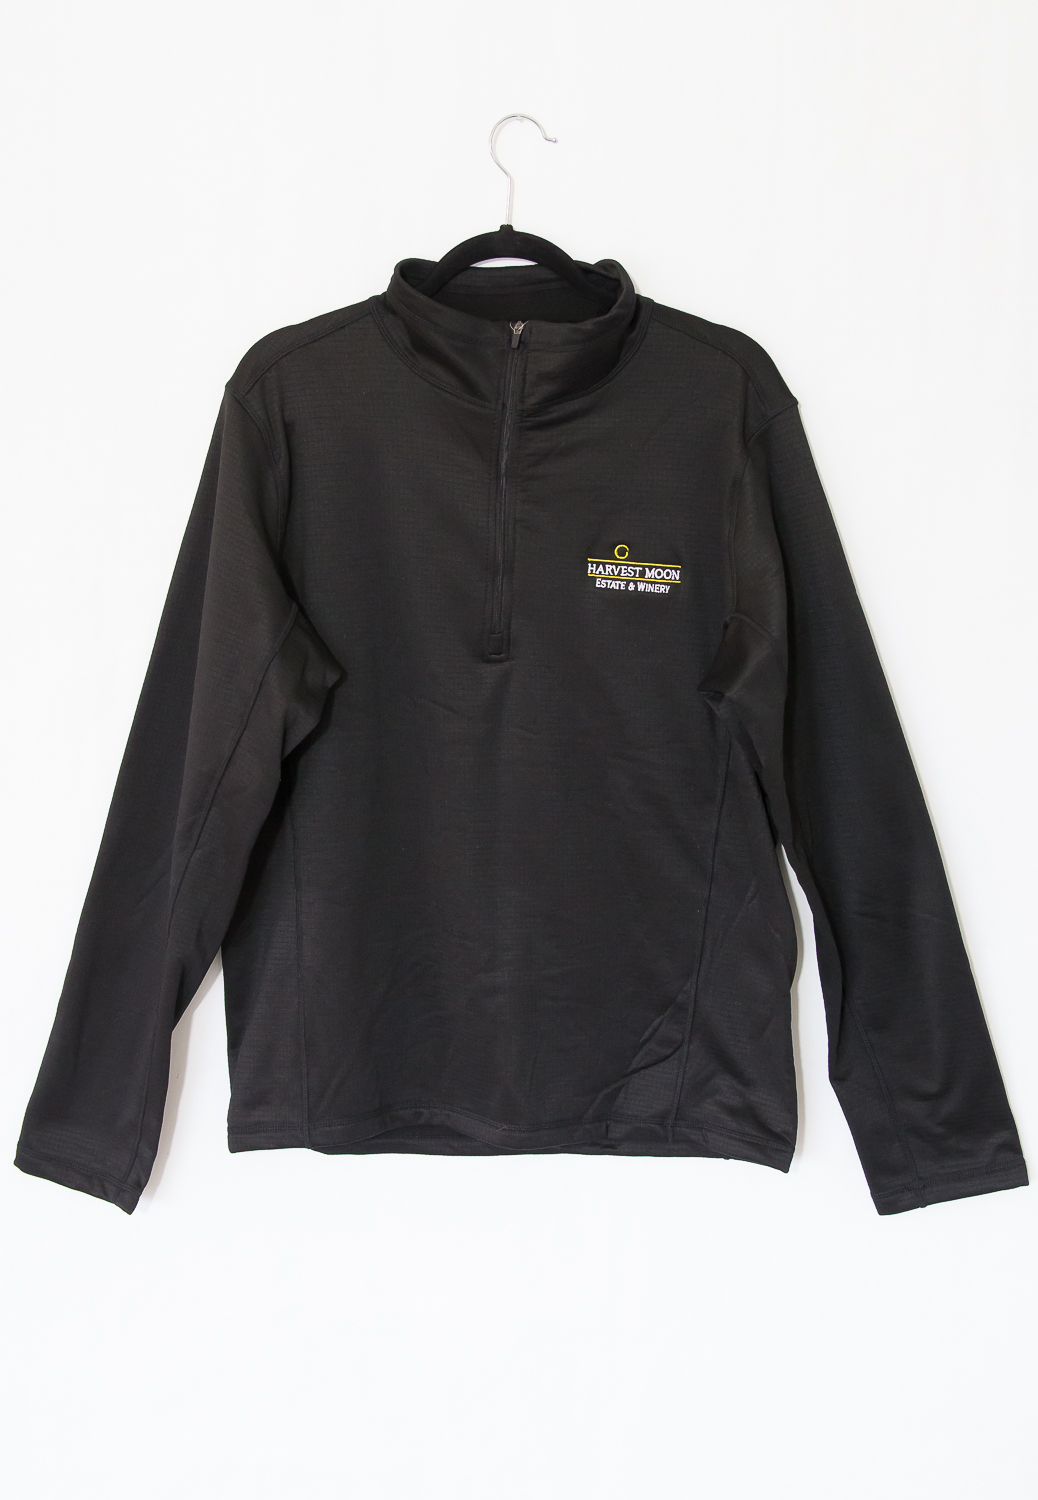 Clothing - Black Pullover